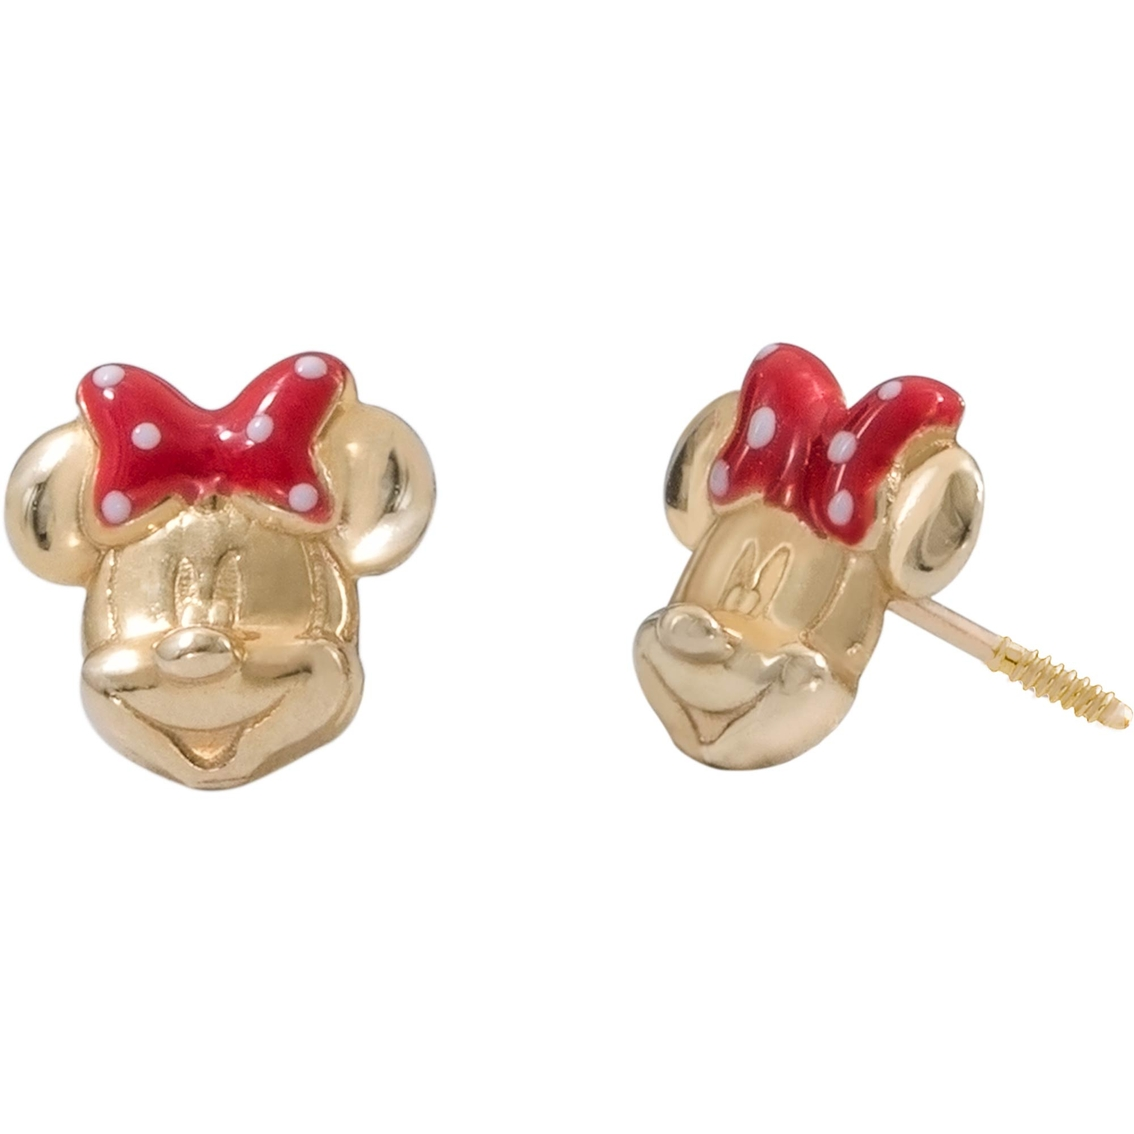 d3be13c8e Disney 14k Gold Minnie Mouse Bow Stud Earrings | Children's Earrings ...